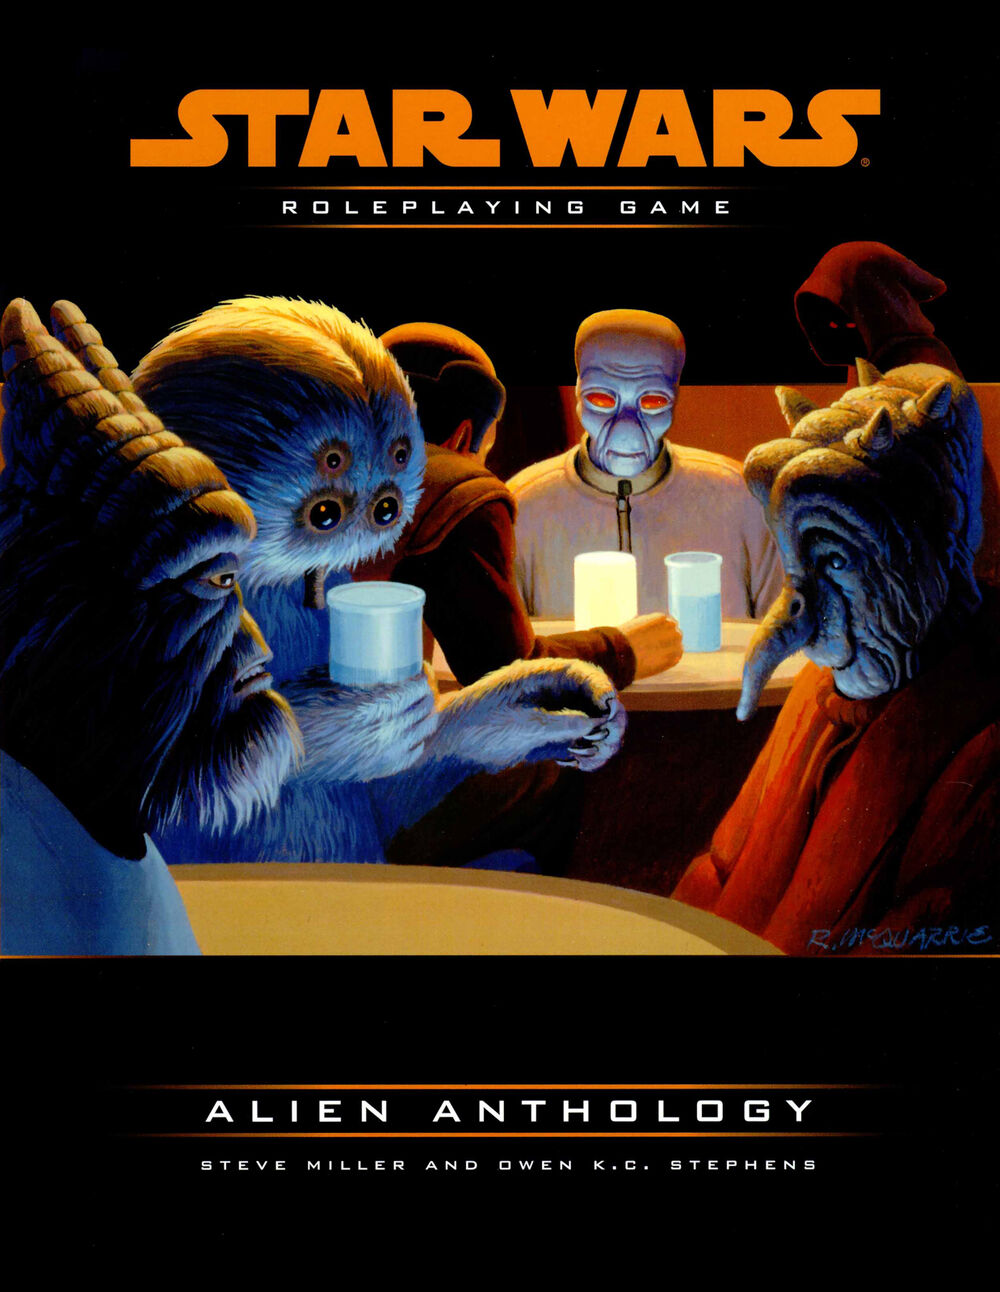 Star Wars: Alien Anthology